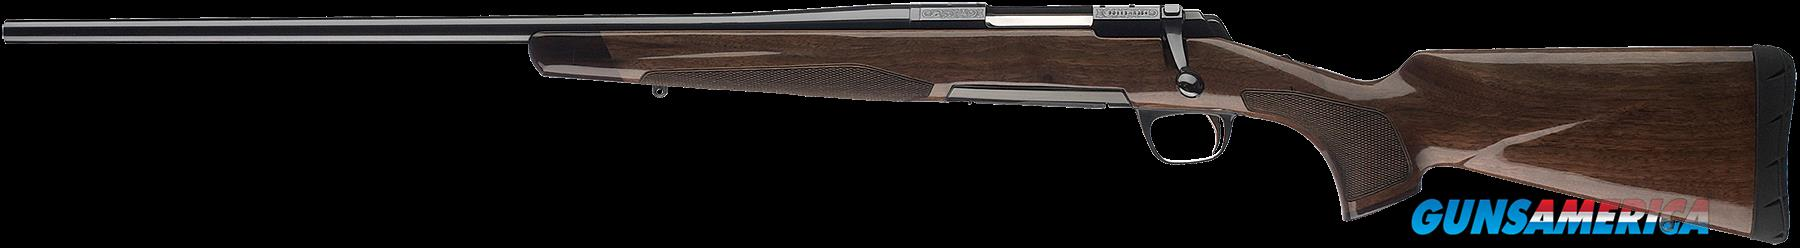 "Browning 035253248 X-Bolt Medallion Left Hand 270 WSM 23"" 3+1 Walnut Stock Blued  Guns > Rifles > Browning Rifles > Bolt Action"